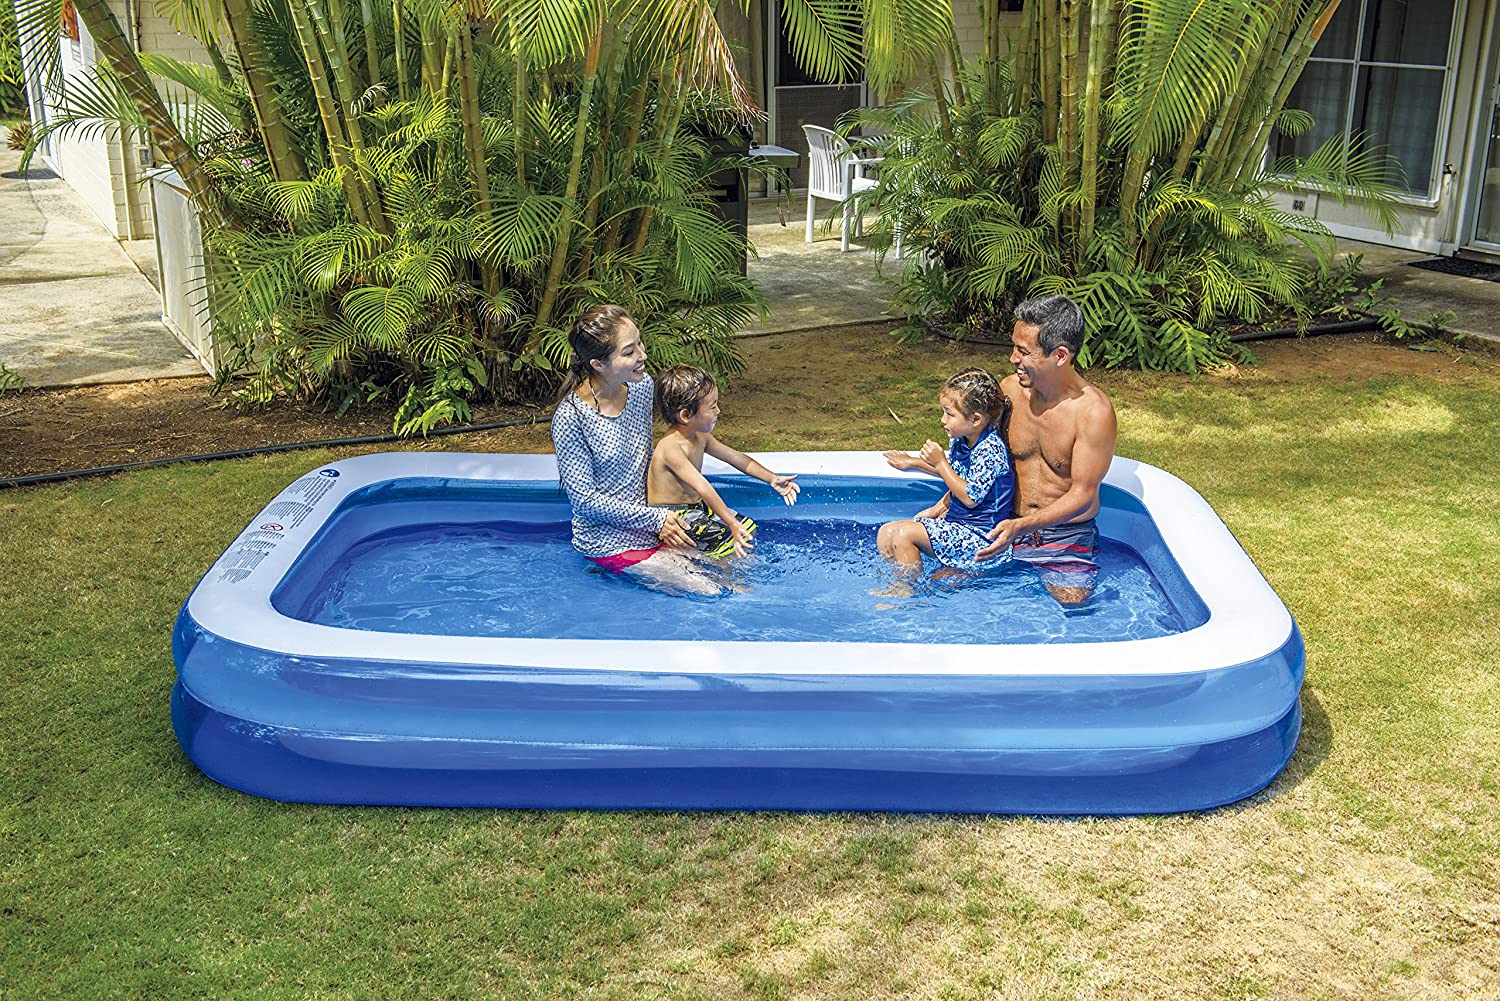 JILONG JL010291-2NPF Inflable Rectangular 1240L Azul, Color Blanco - Piscina (Inflable, Rectangular, 1240 L, Azul, Color Blanco, 6 año(s), ...